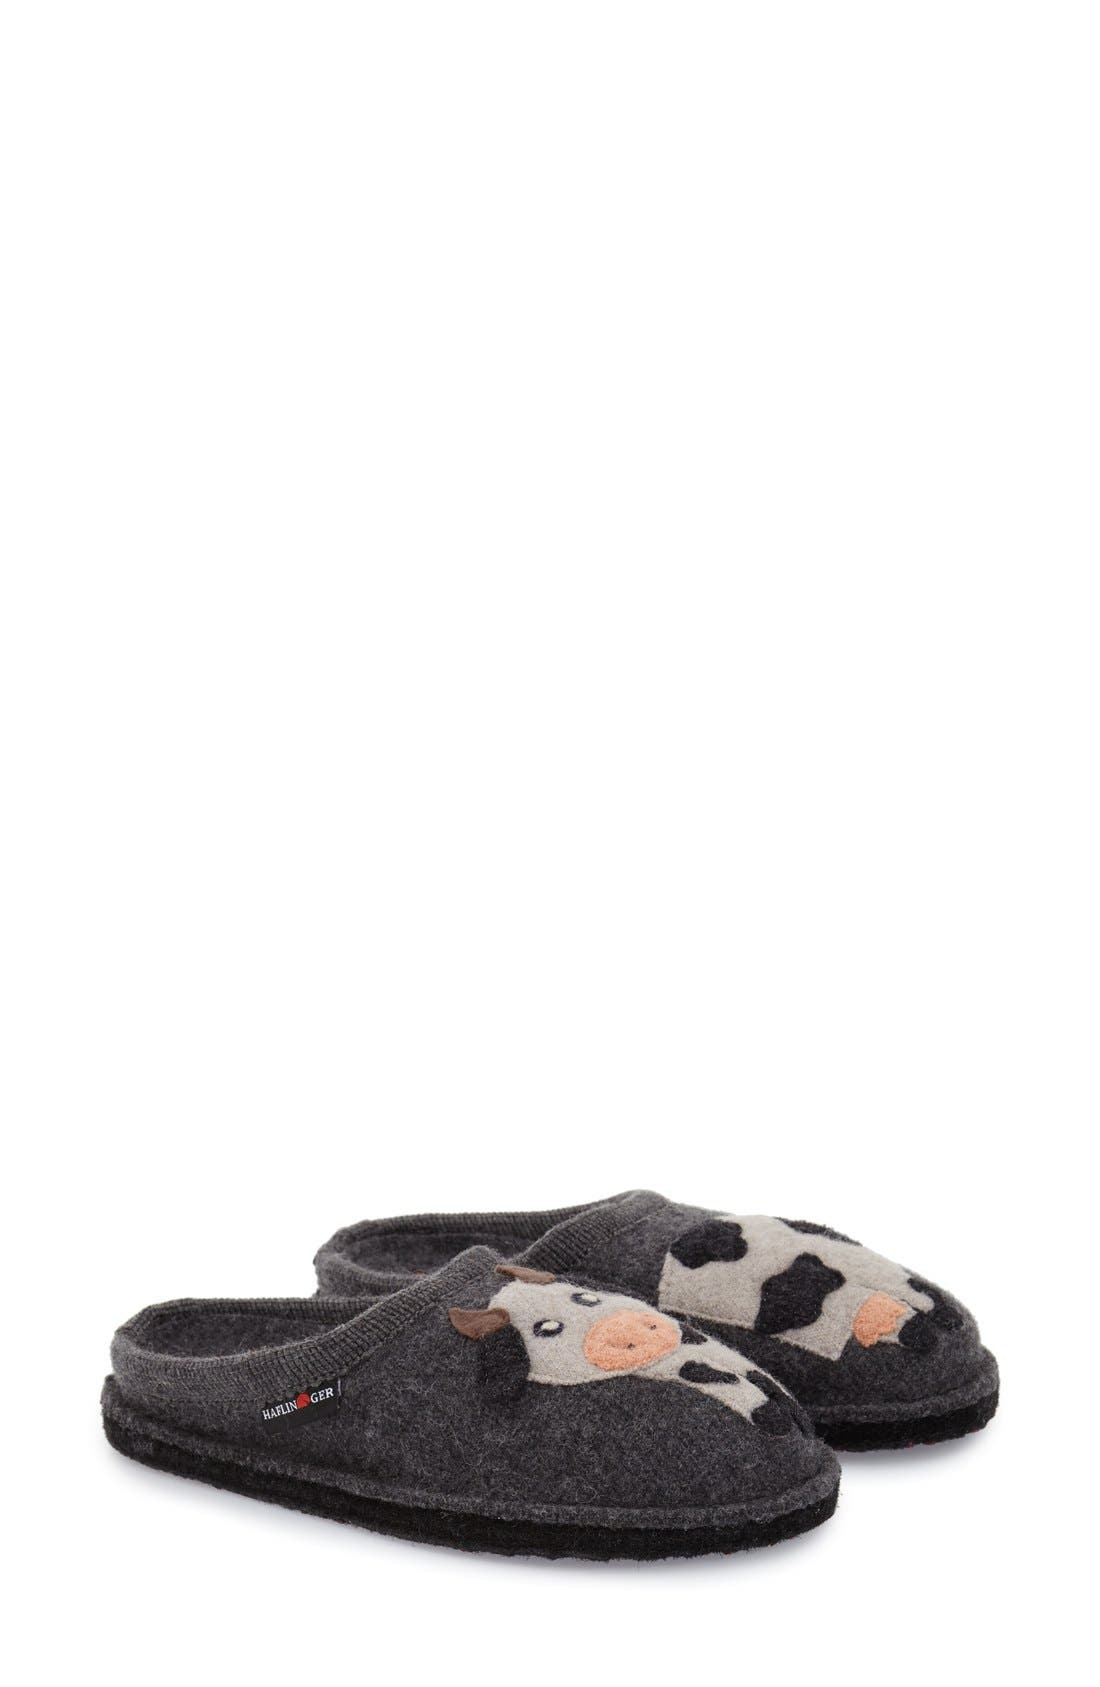 'Cow' Slipper,                         Main,                         color, Grey Wool